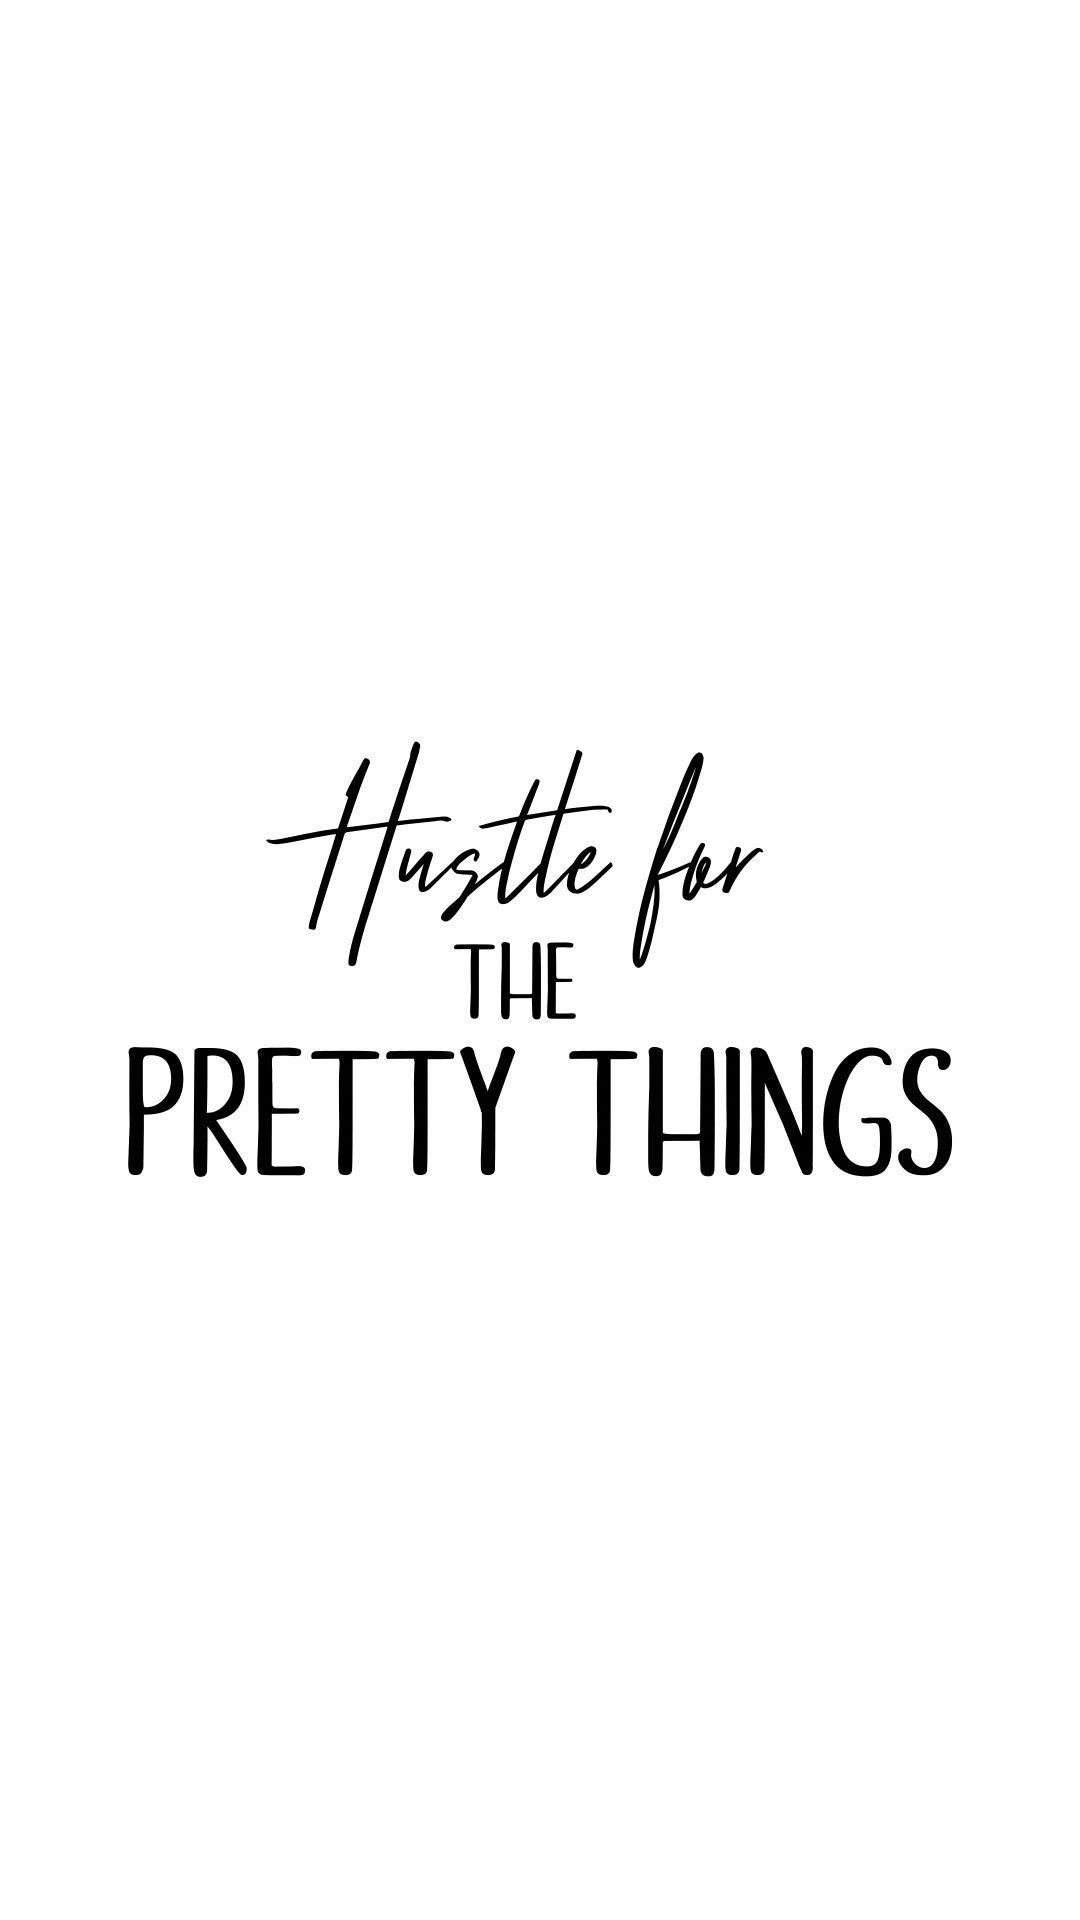 Quotes, Sayings, Inspiration, Motivation, Girl Bosses